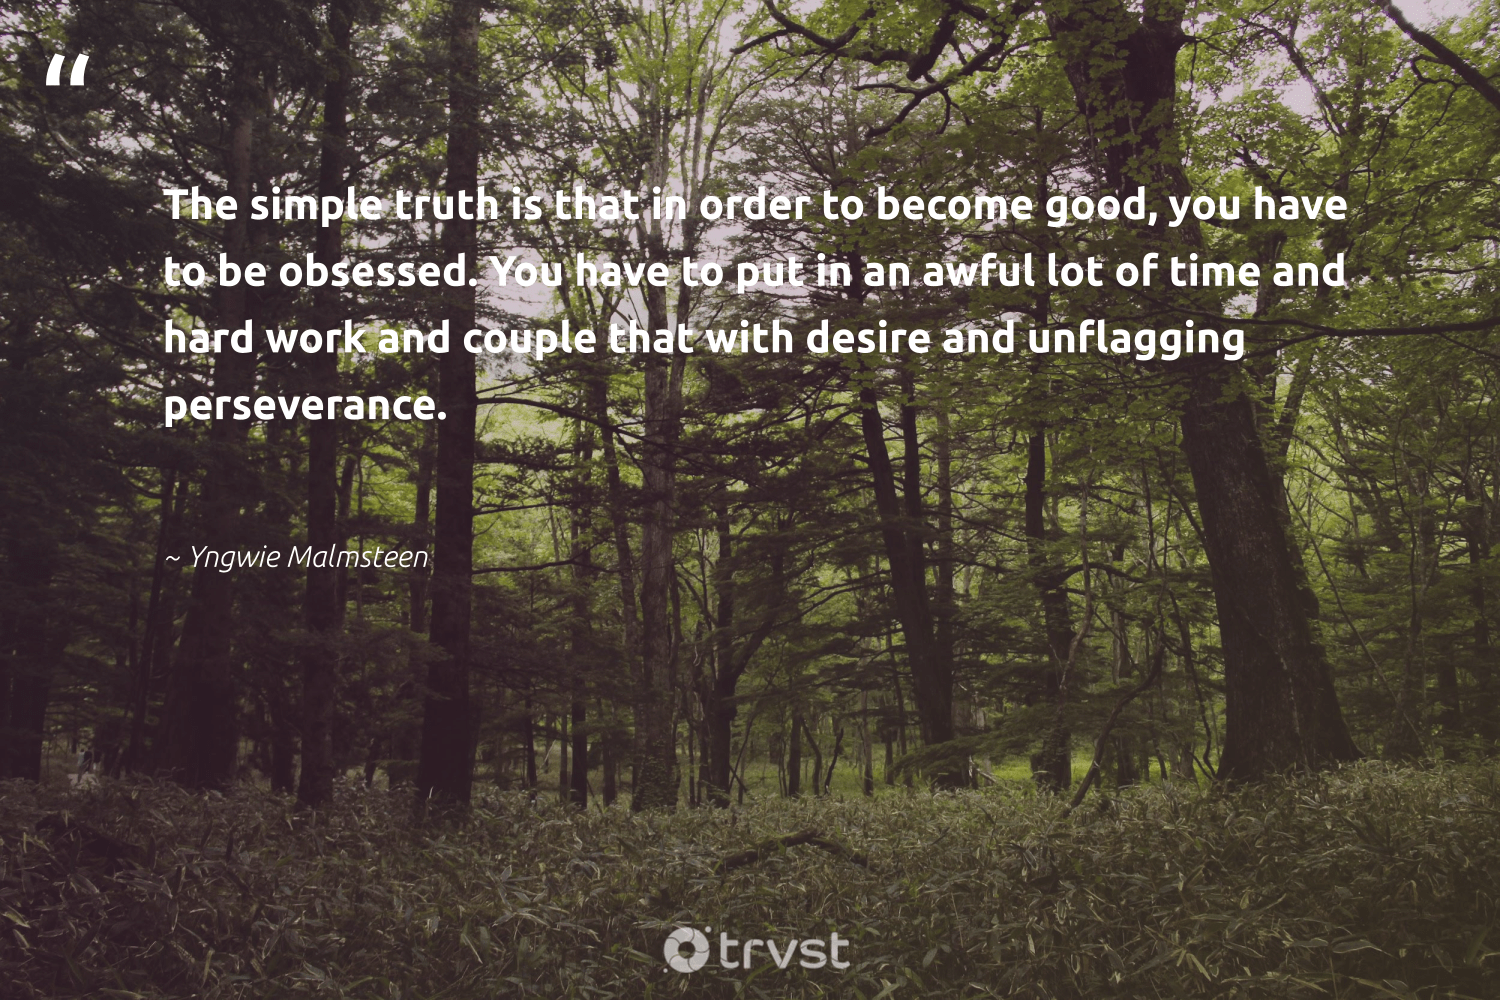 """The simple truth is that in order to become good, you have to be obsessed. You have to put in an awful lot of time and hard work and couple that with desire and unflagging perseverance.""  - Yngwie Malmsteen #trvst #quotes #truth #nevergiveup #dosomething #futureofwork #changetheworld #softskills #dotherightthing #begreat #planetearthfirst #takeaction"